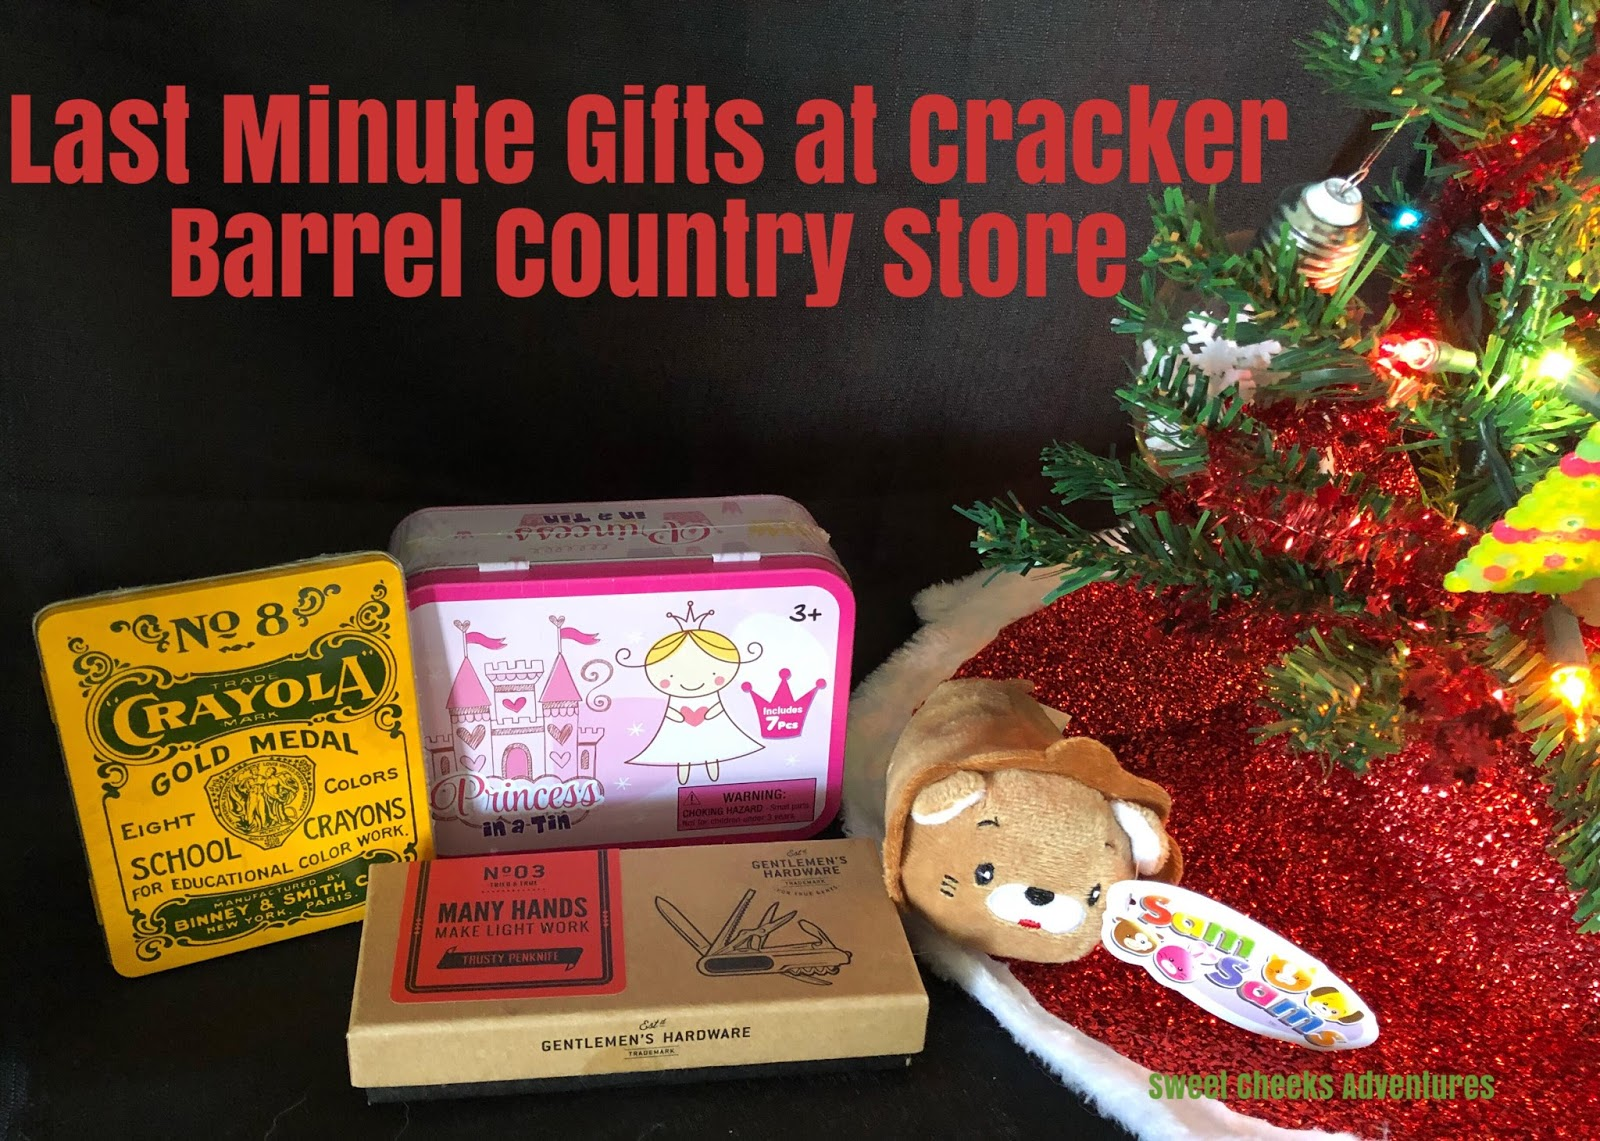 cracker barrel country store is one of my favorite places to shop for interesting holiday gifts last year my family took an evening and shopped after